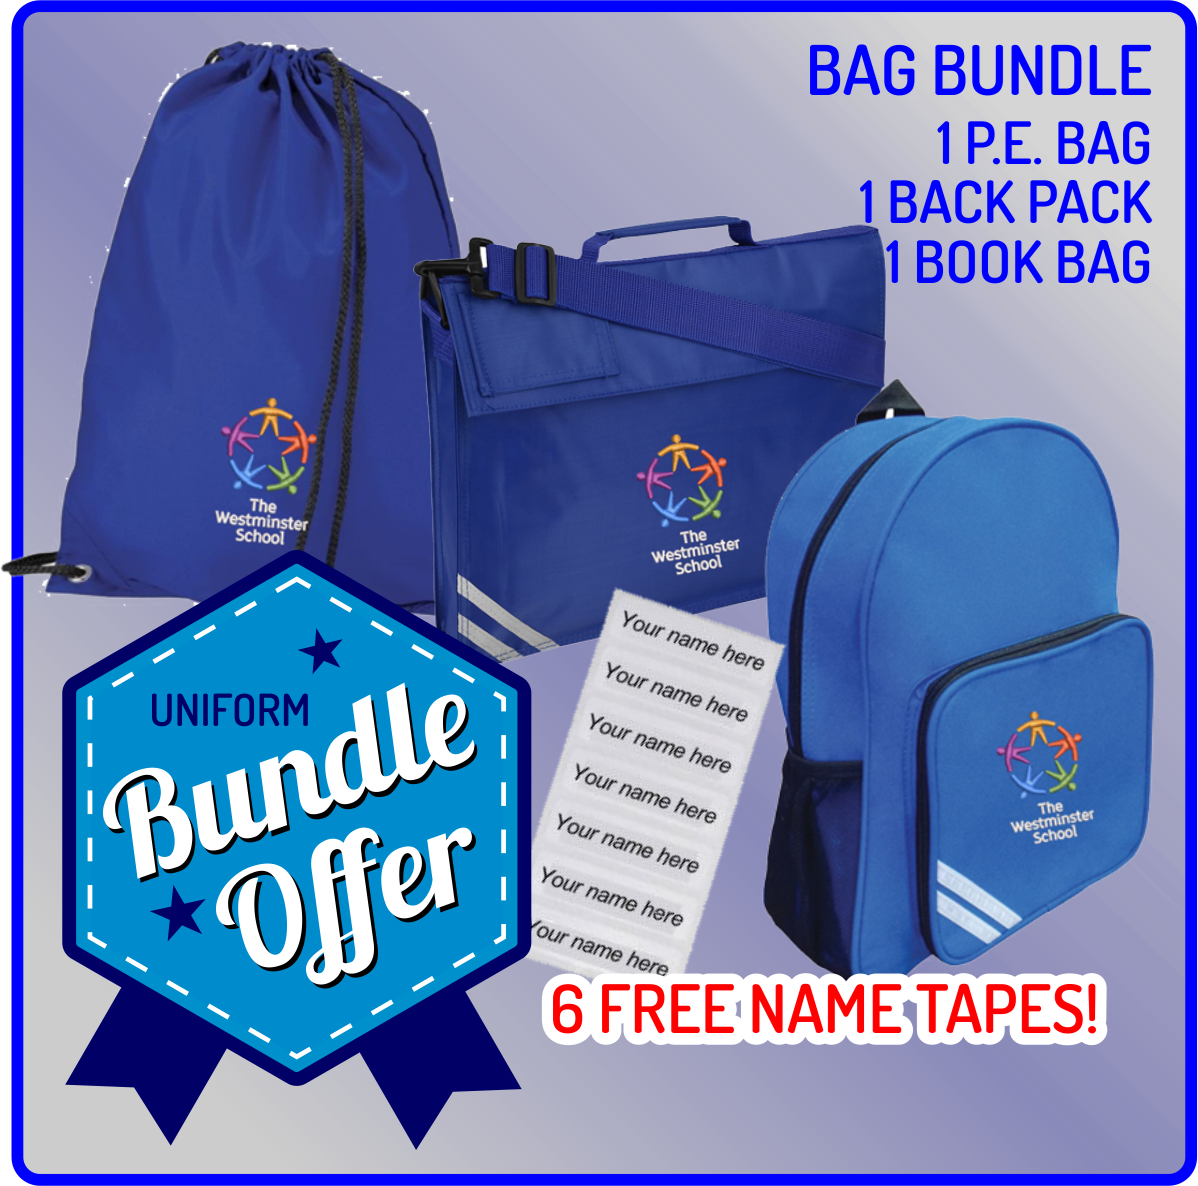 1 each of PE Bag, Backpackand Bookbag - FREE NAME TAPES!